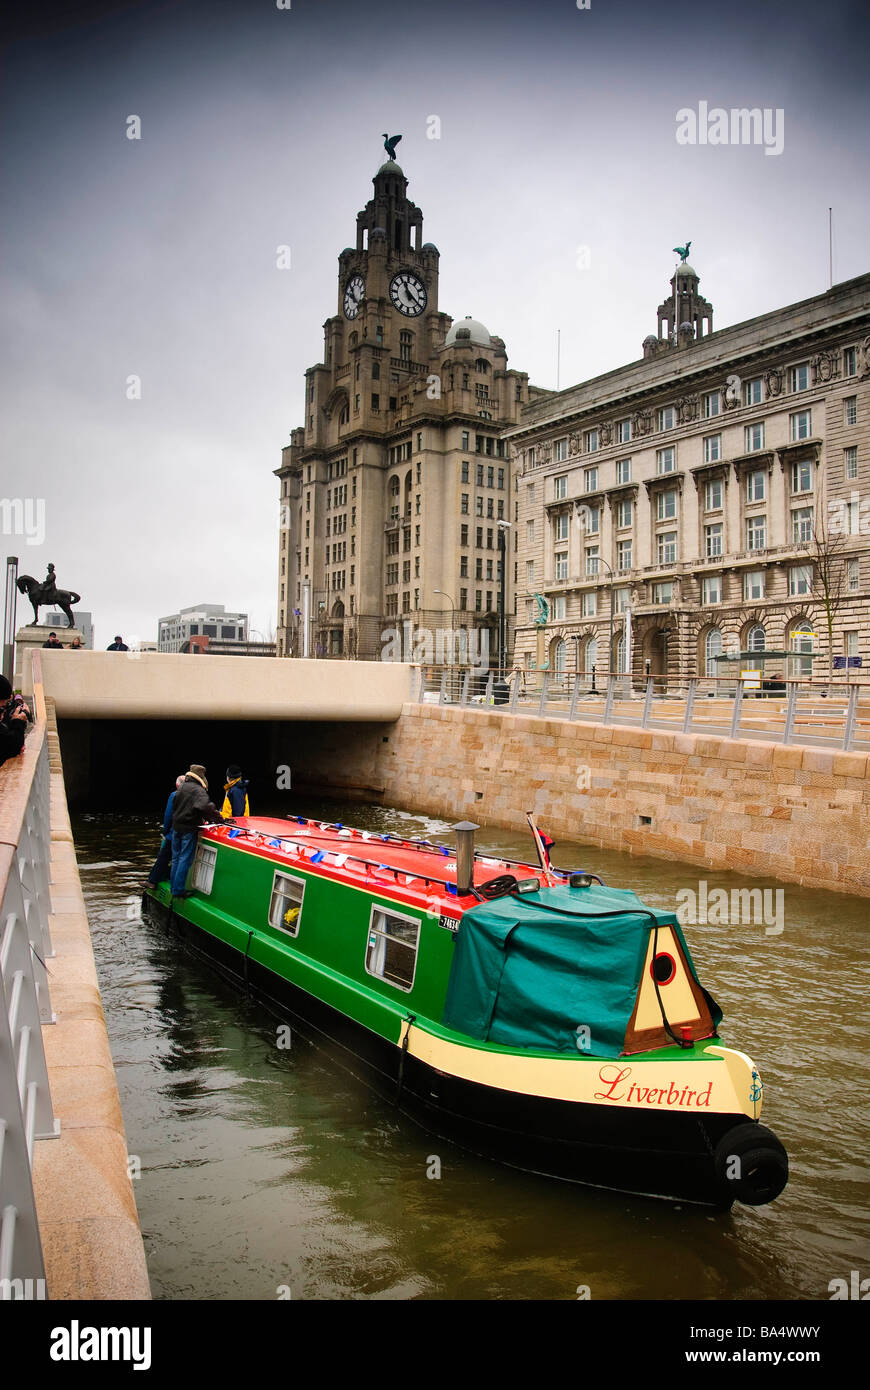 The narrowboat  named Liverbird on the new canal link on the Leeds Liverpool in front of the Liver building - Stock Image